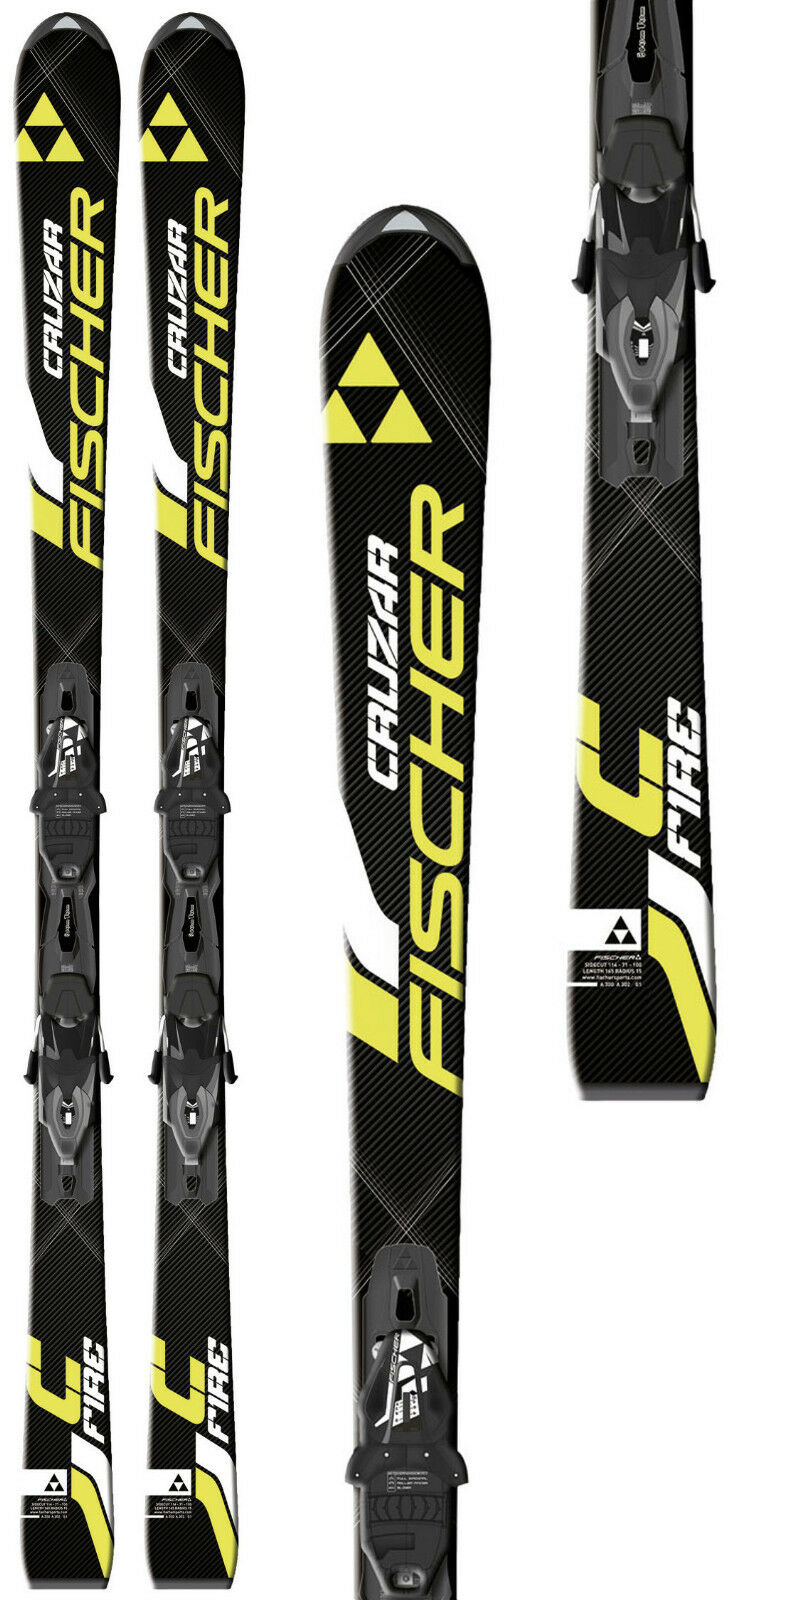 New Fischer Cruzar Fire 165 cm alpine downhill skis and bindings all mountain